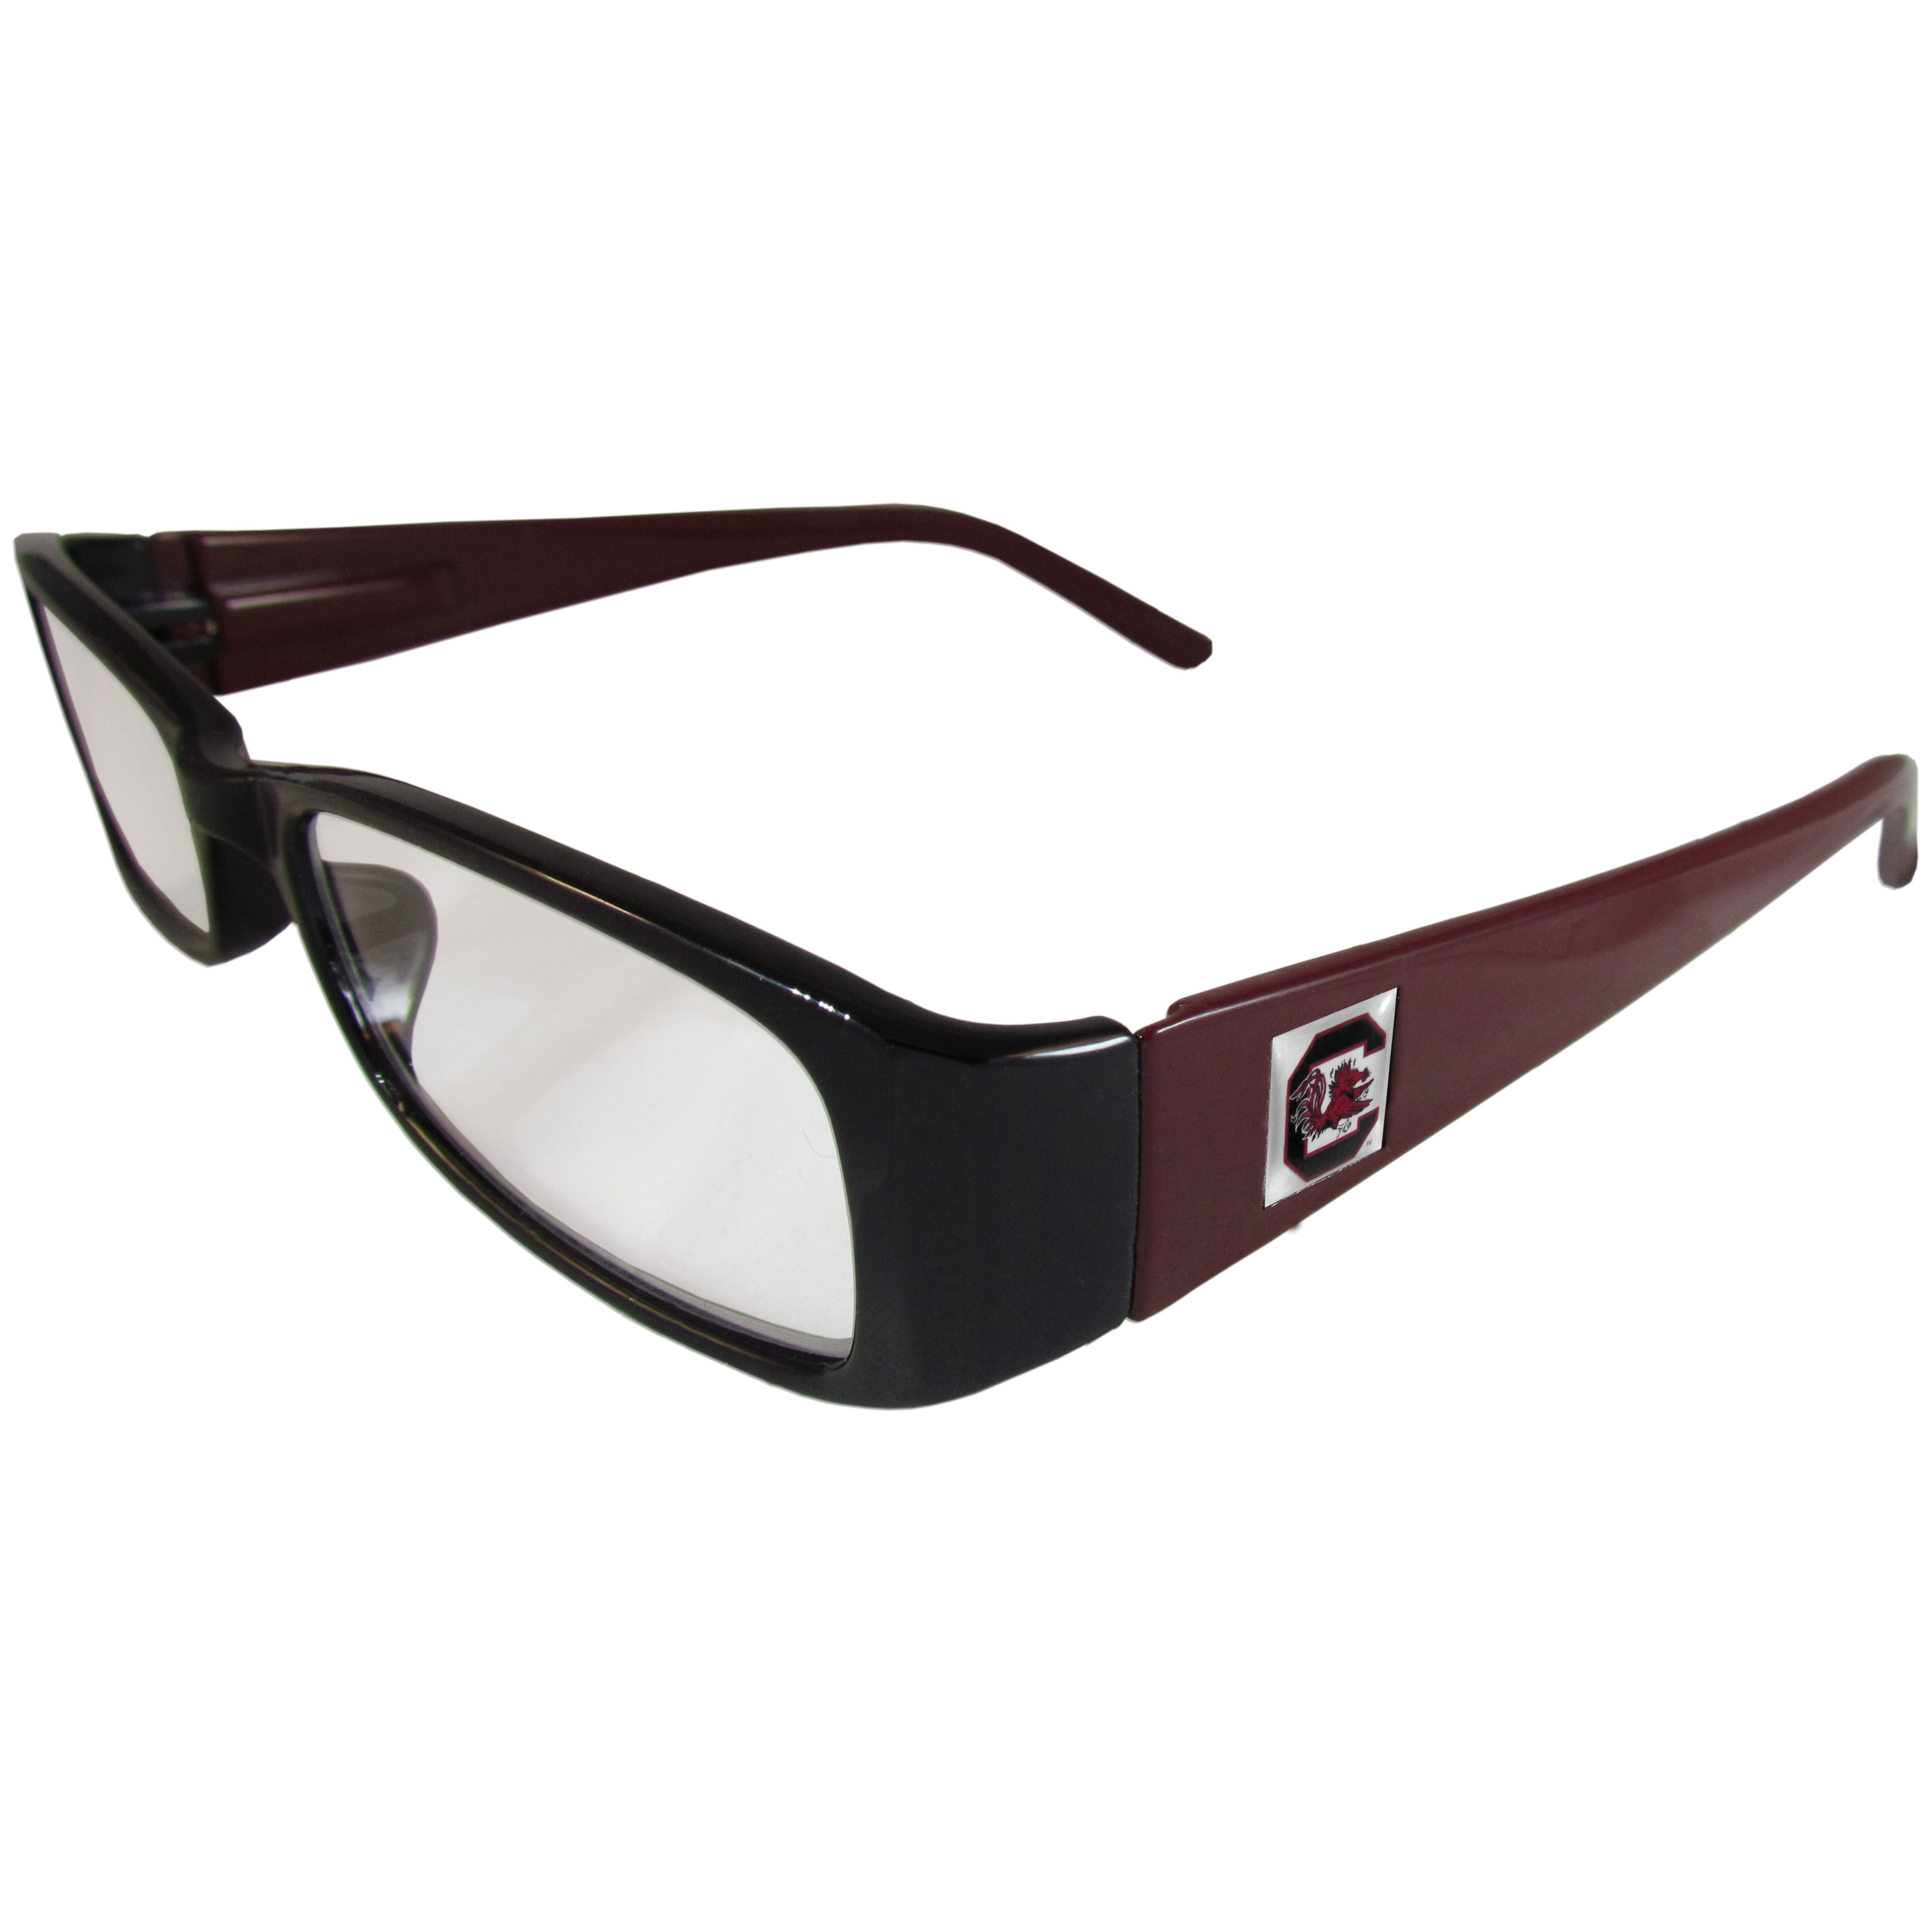 S. Carolina Gamecocks Reading Glasses +2.50 - Our S. Carolina Gamecocks reading glasses are 5.25 inches wide and feature the team logo on each arm. Magnification Power 2.50